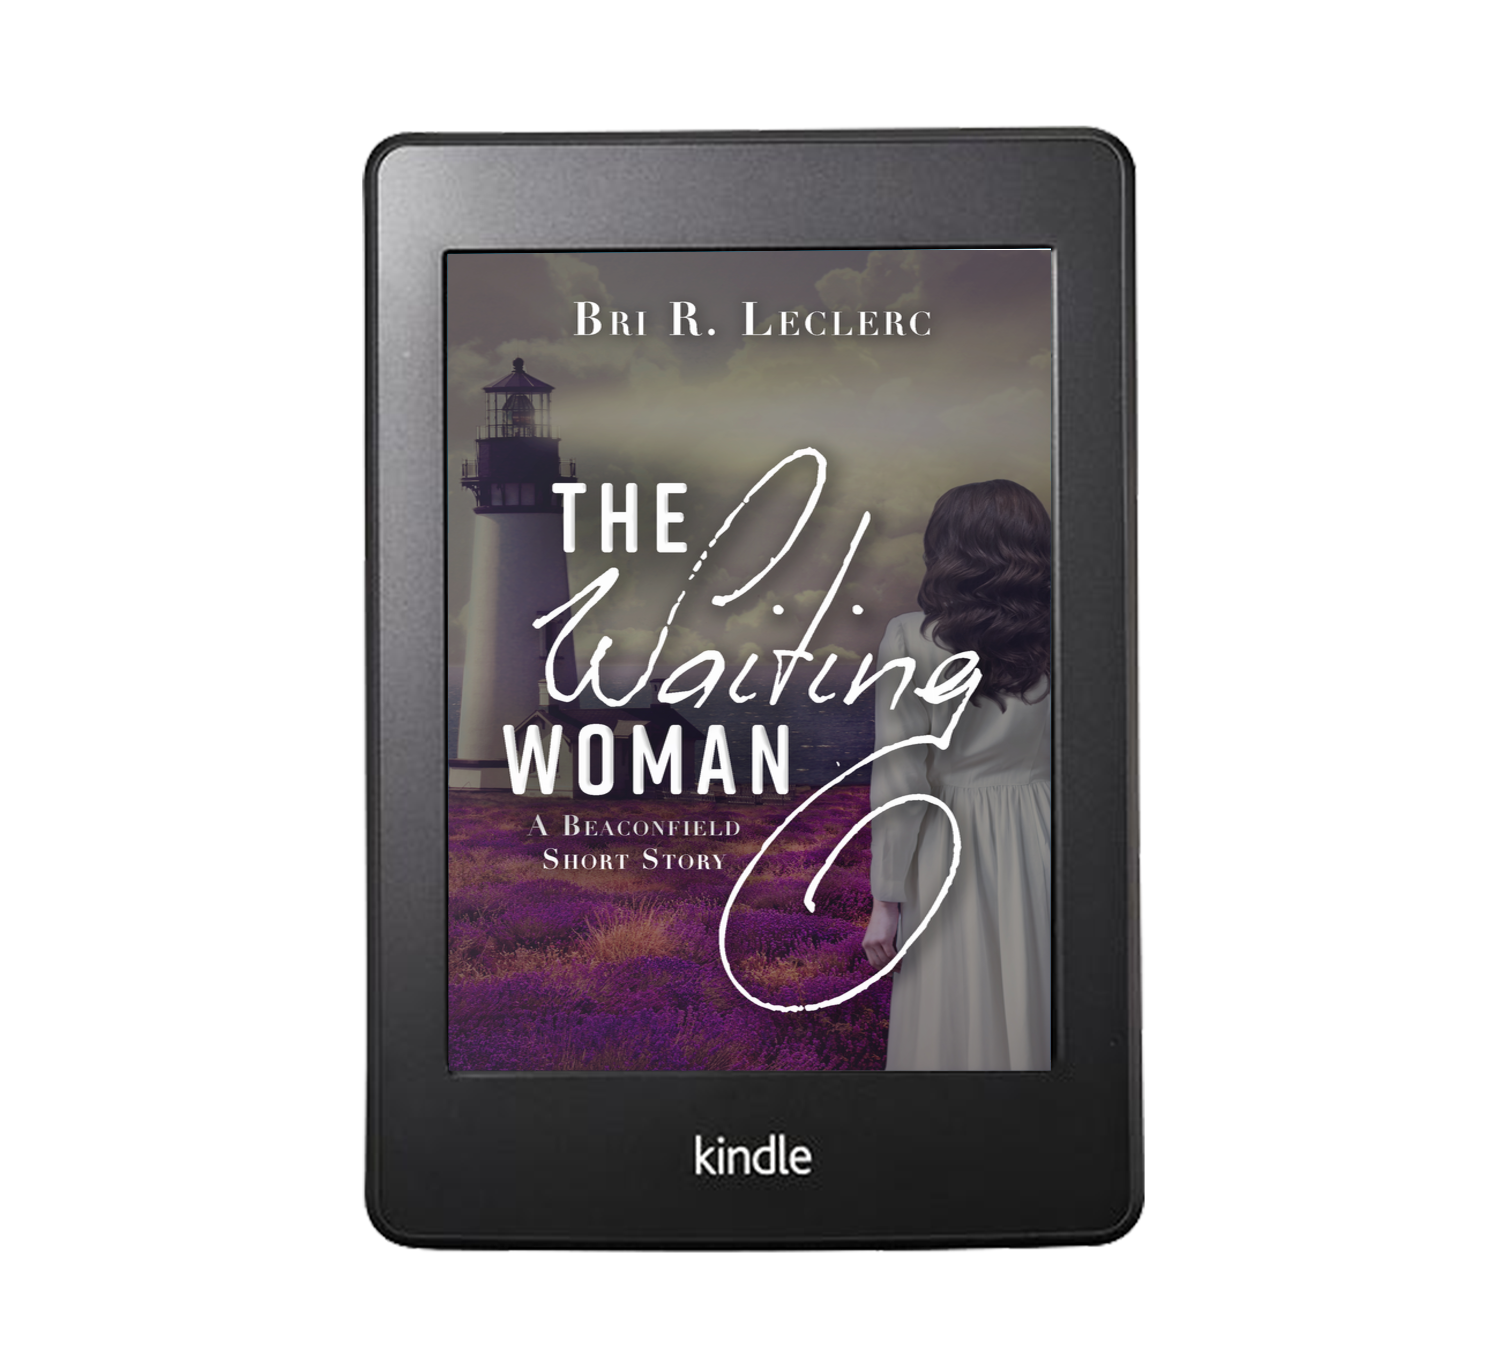 Want a FREE short story? - Read more about the town of Beaconfield in The Waiting Woman.